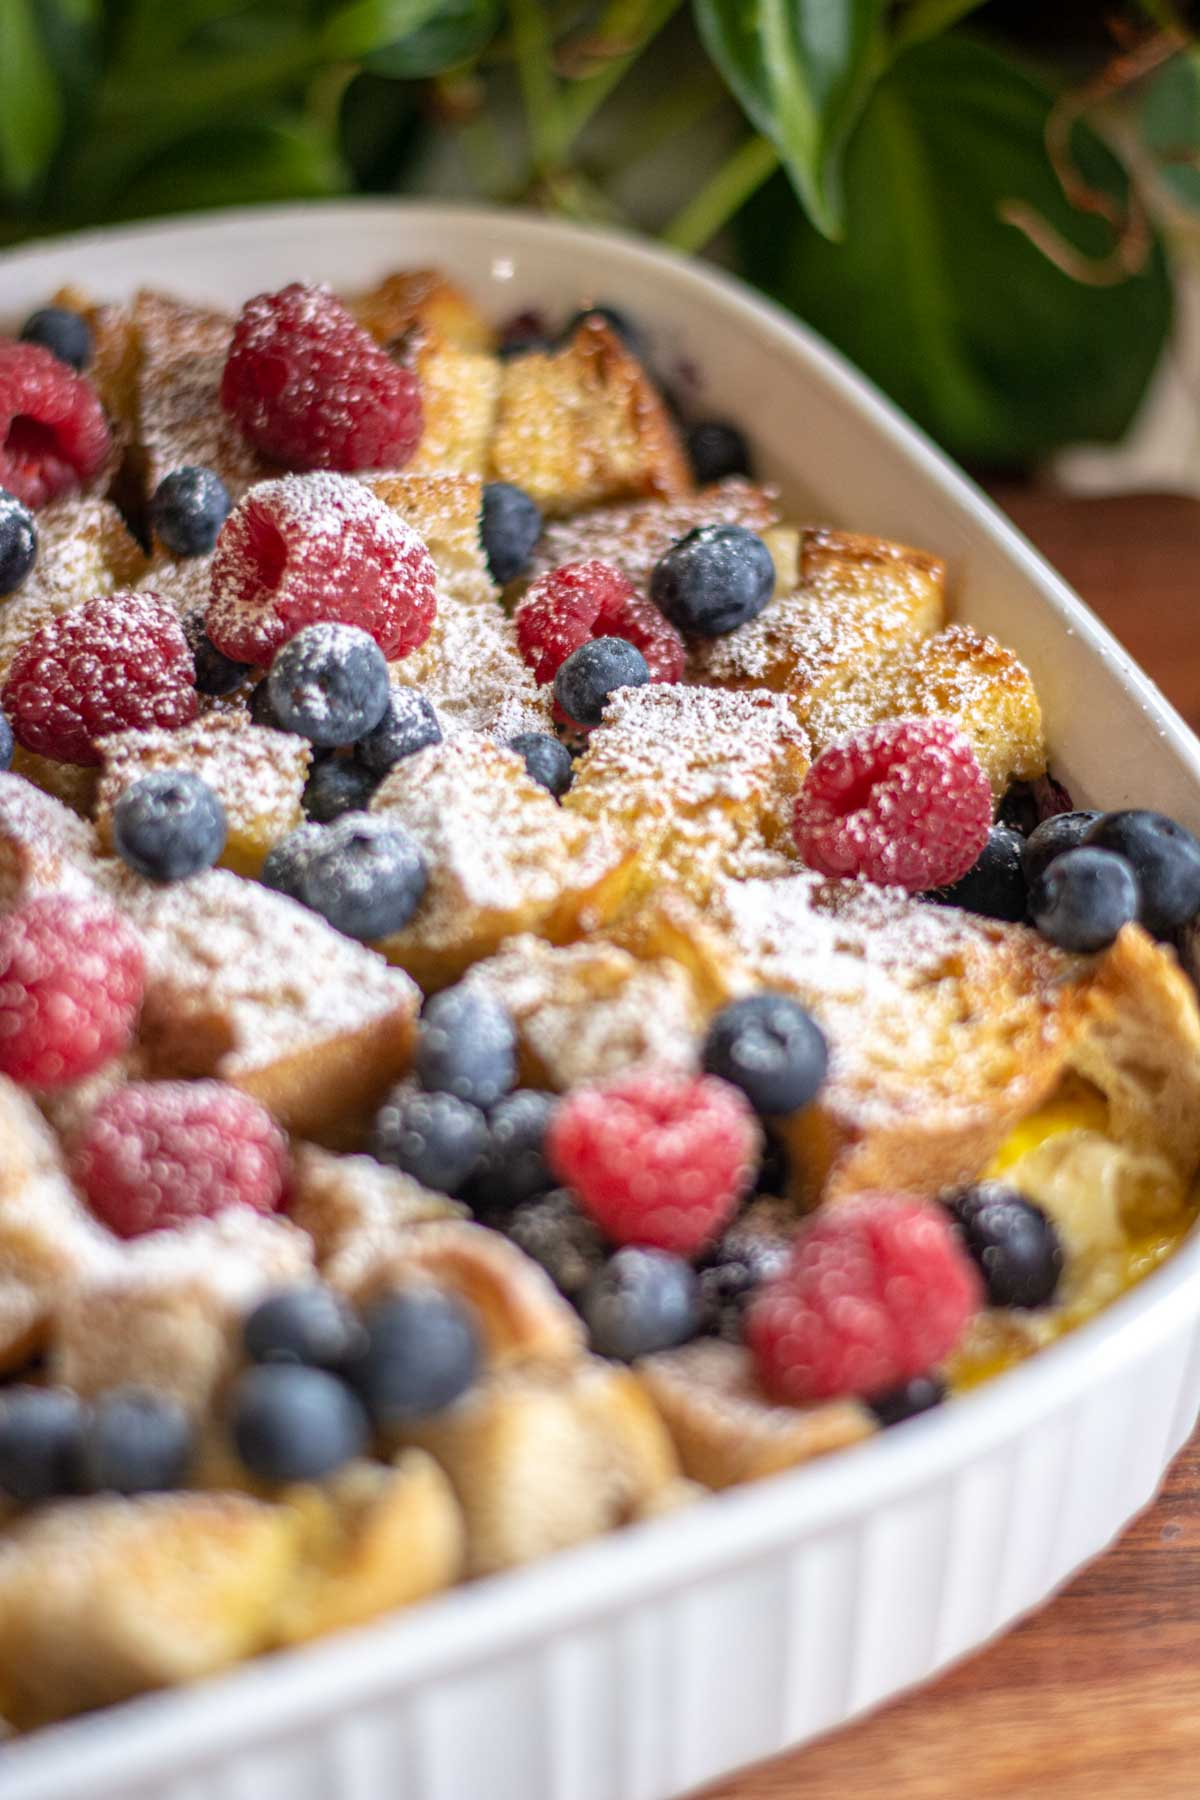 fully baked casserole with fresh berries on top and dusted with powdered sugar.